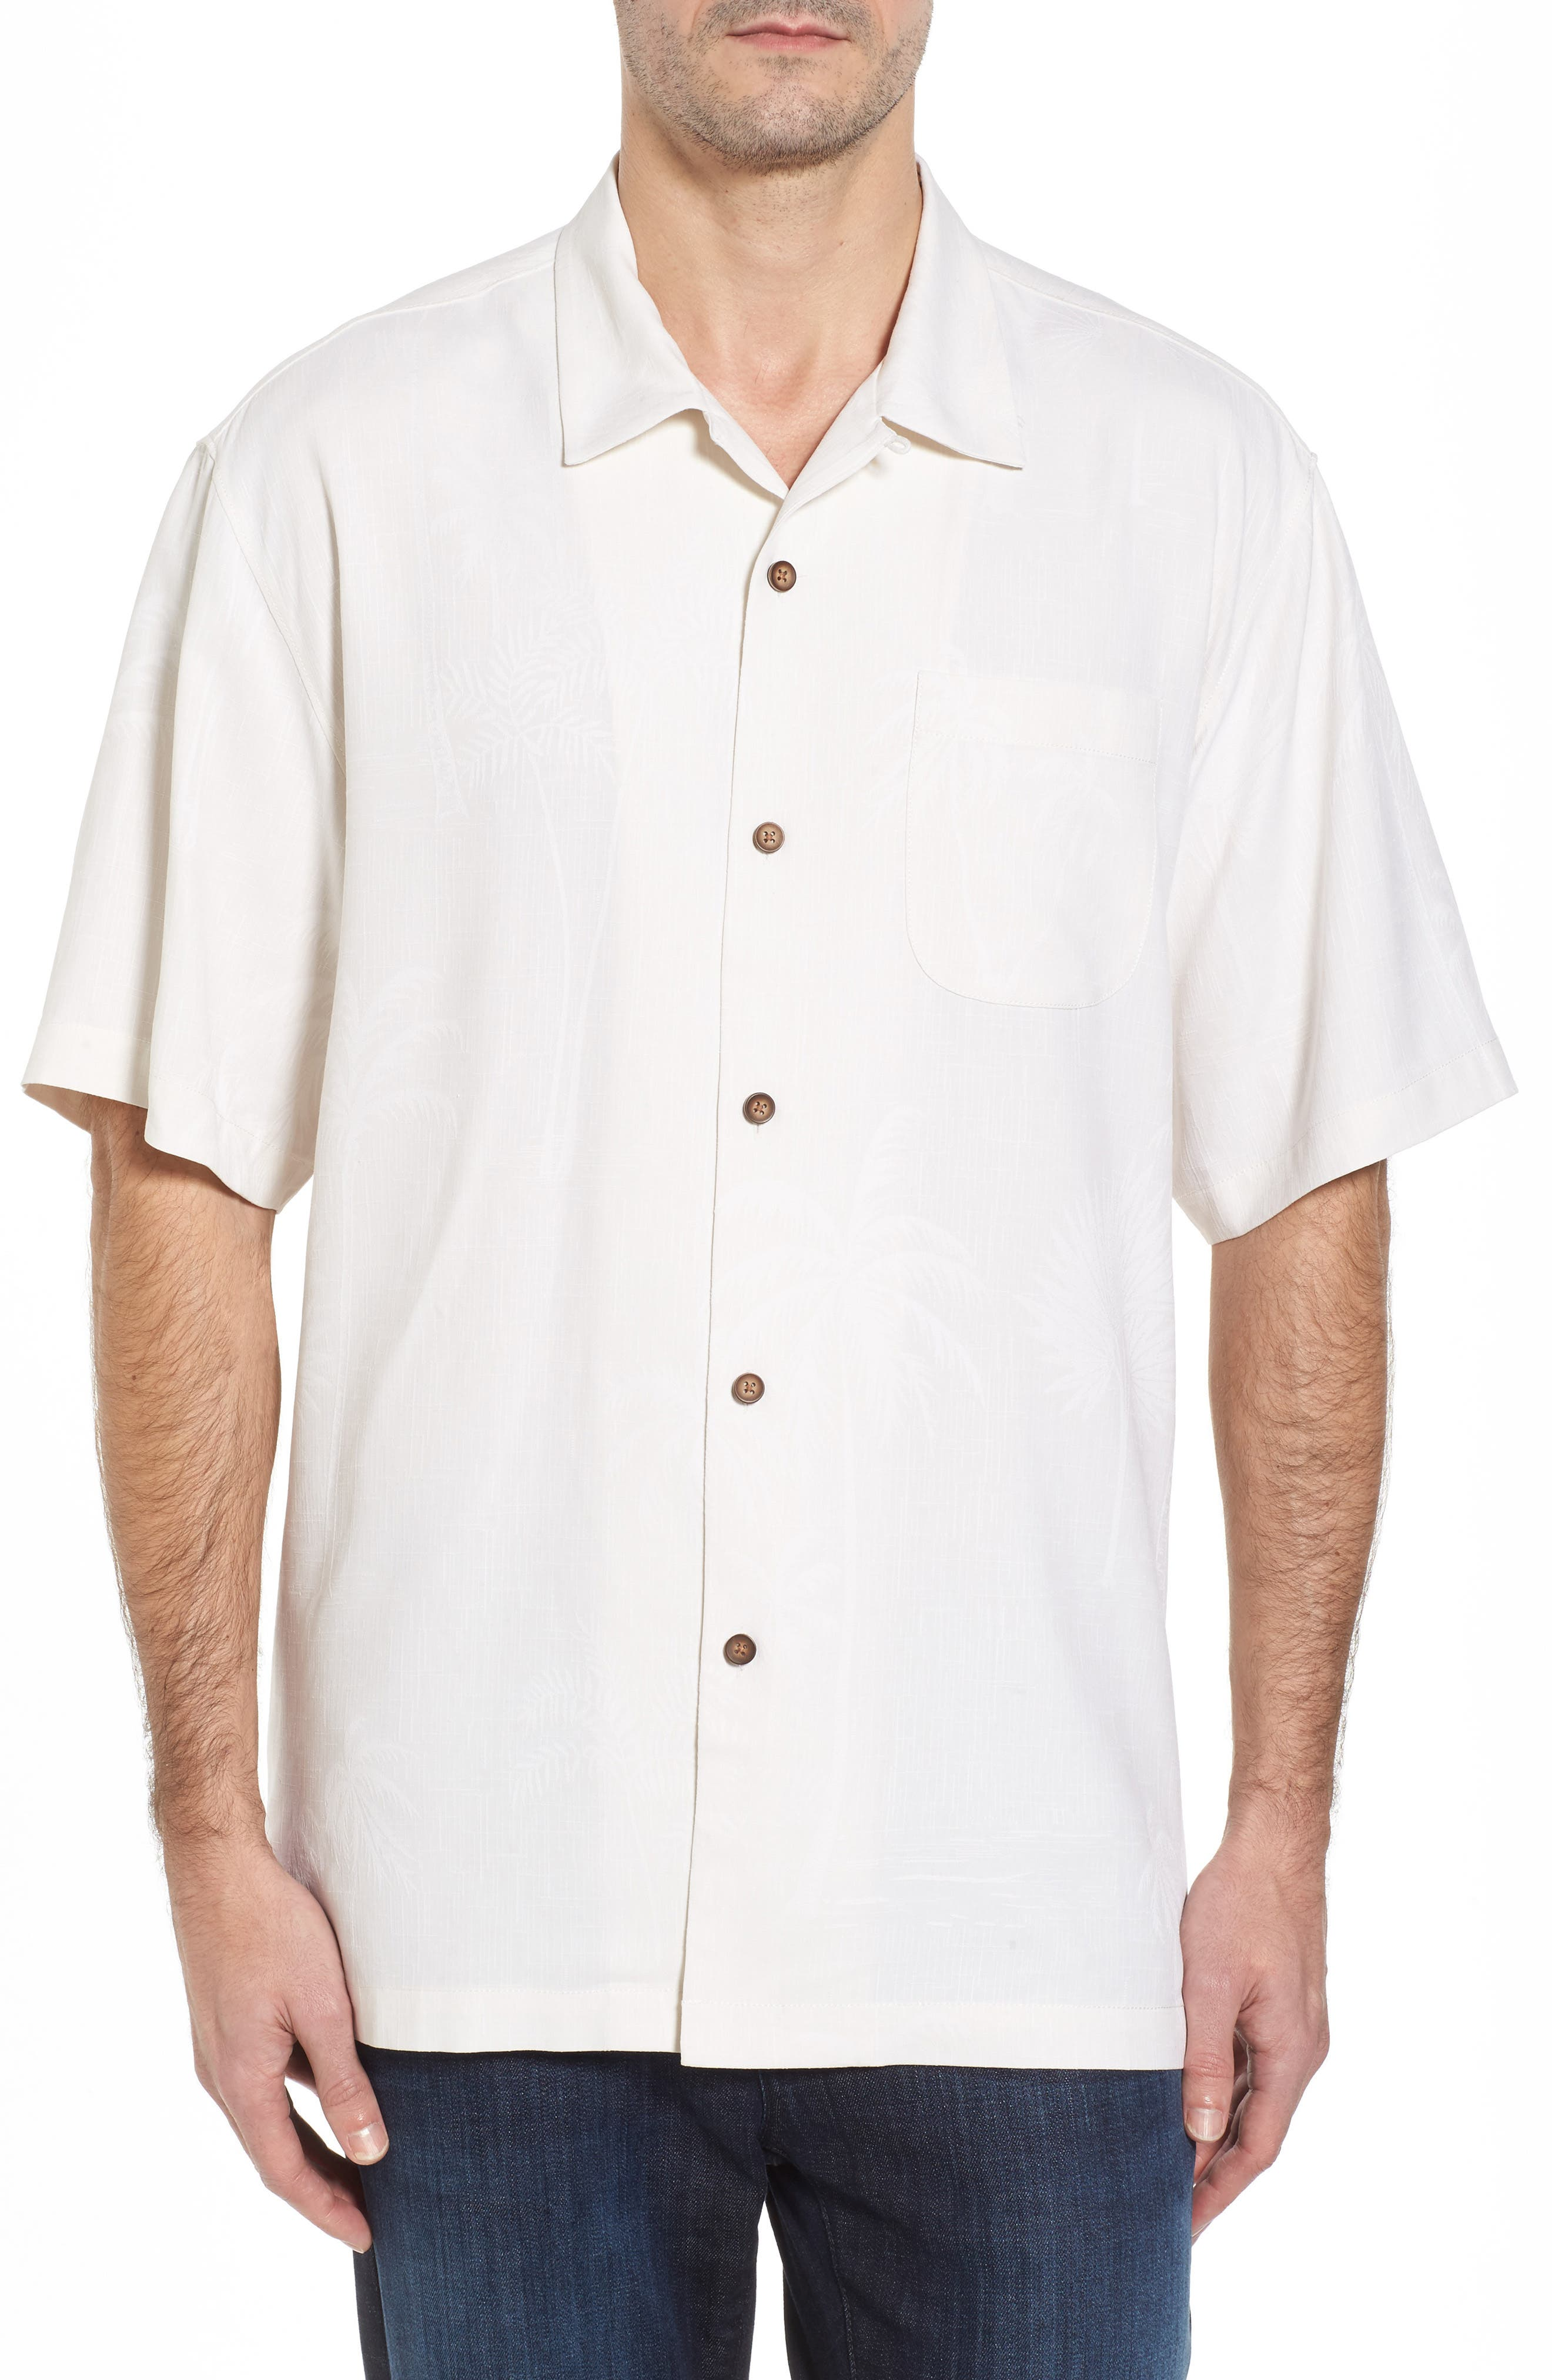 Alternate Image 1 Selected - Tommy Bahama Offshore Sails Silk Camp Shirt